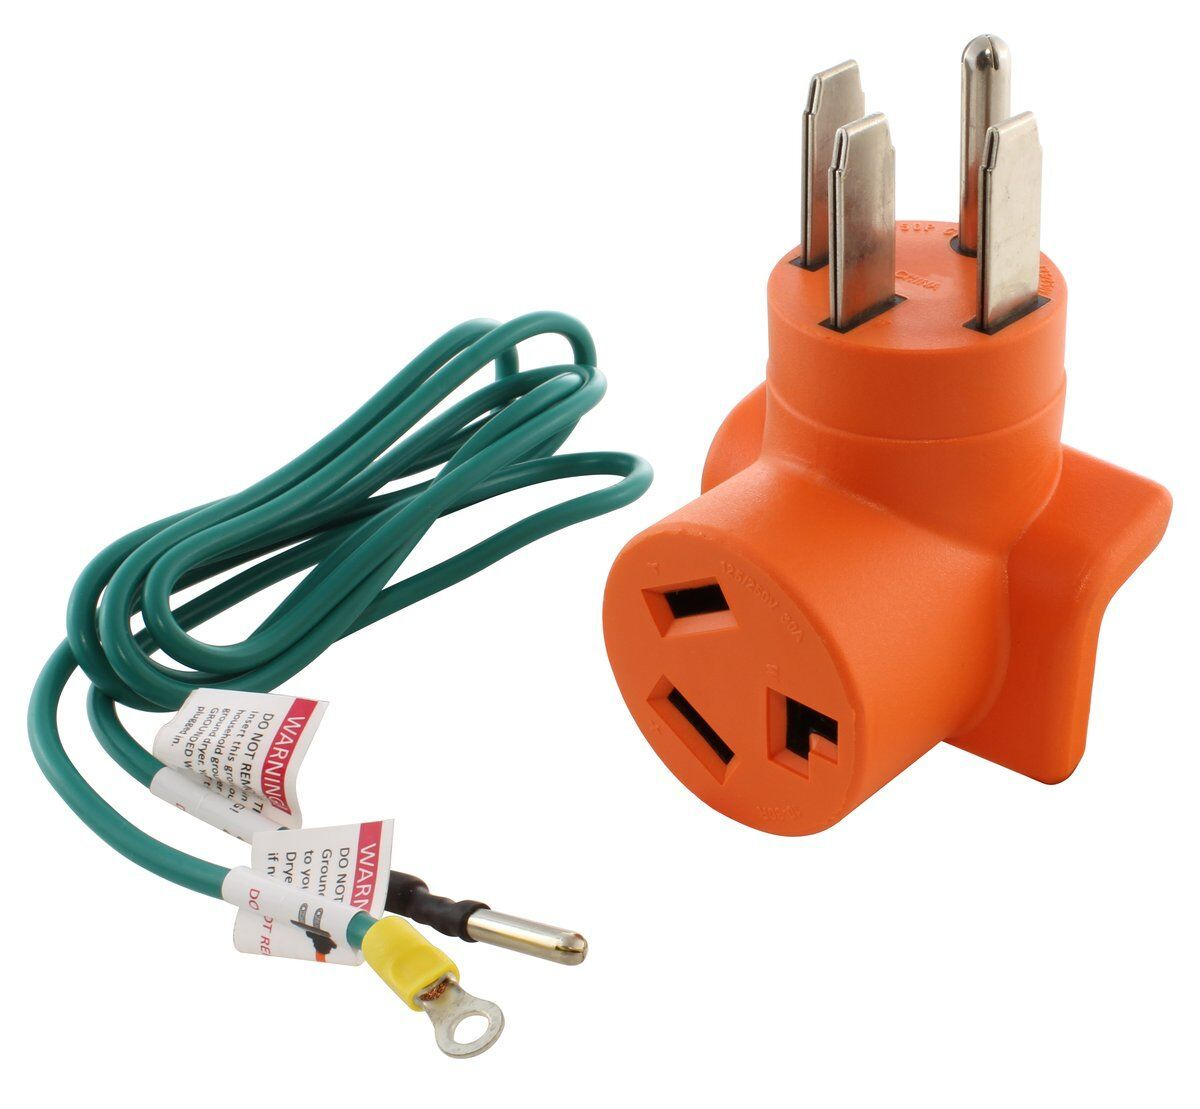 Ac Works Ad14501030 14 50p 50a 4 Prong Plug To 10 30r 3 Prong Dryer Outlet In 2020 Dryer Outlet Plugs It Works